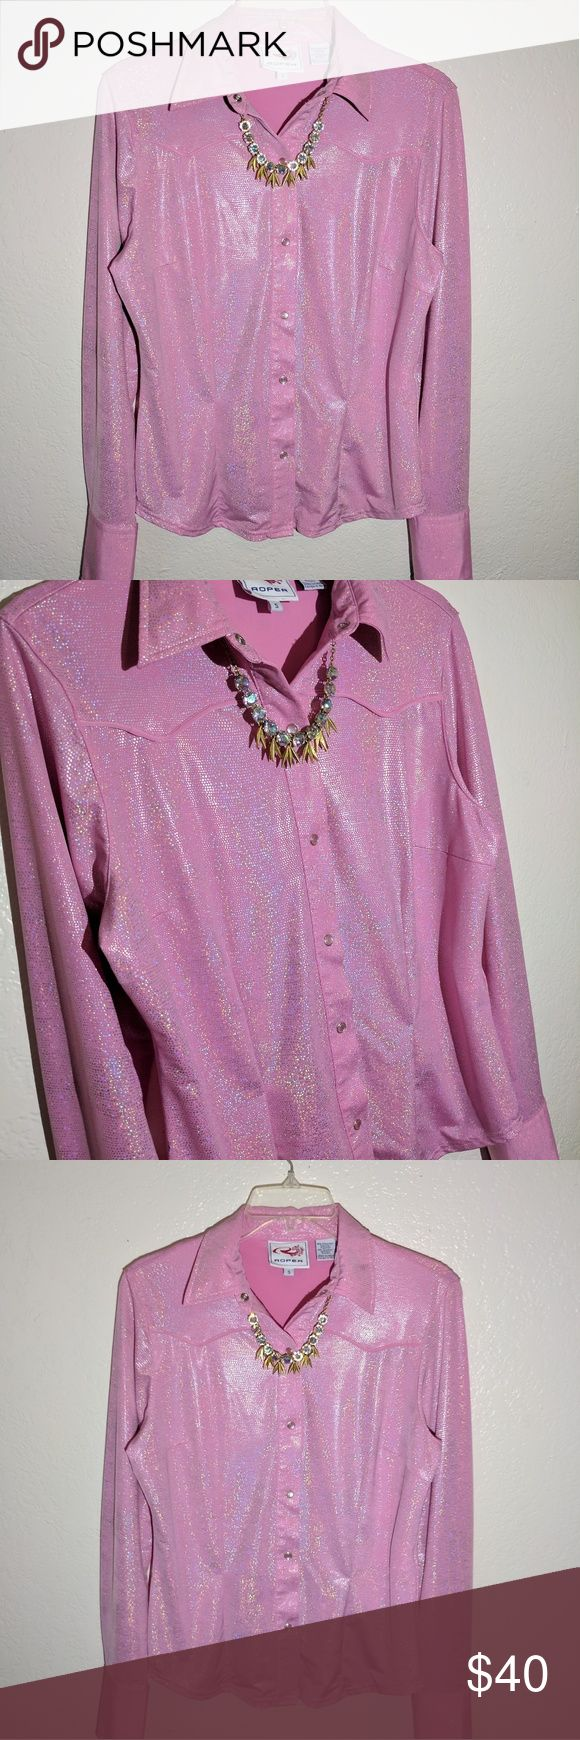 Iridescent Western Button up. This top is so fun and crazy! But it wears really cute and is a high quality expensive top. Would be great as a performance piece for a dancer, singer, rodeos etc. Or could make a killer Western Barbie costume for Halloween 😉 Runs big, could fit medium easily! One small mark on the sleeve and side, pictured. Roper Tops Button Down Shirts